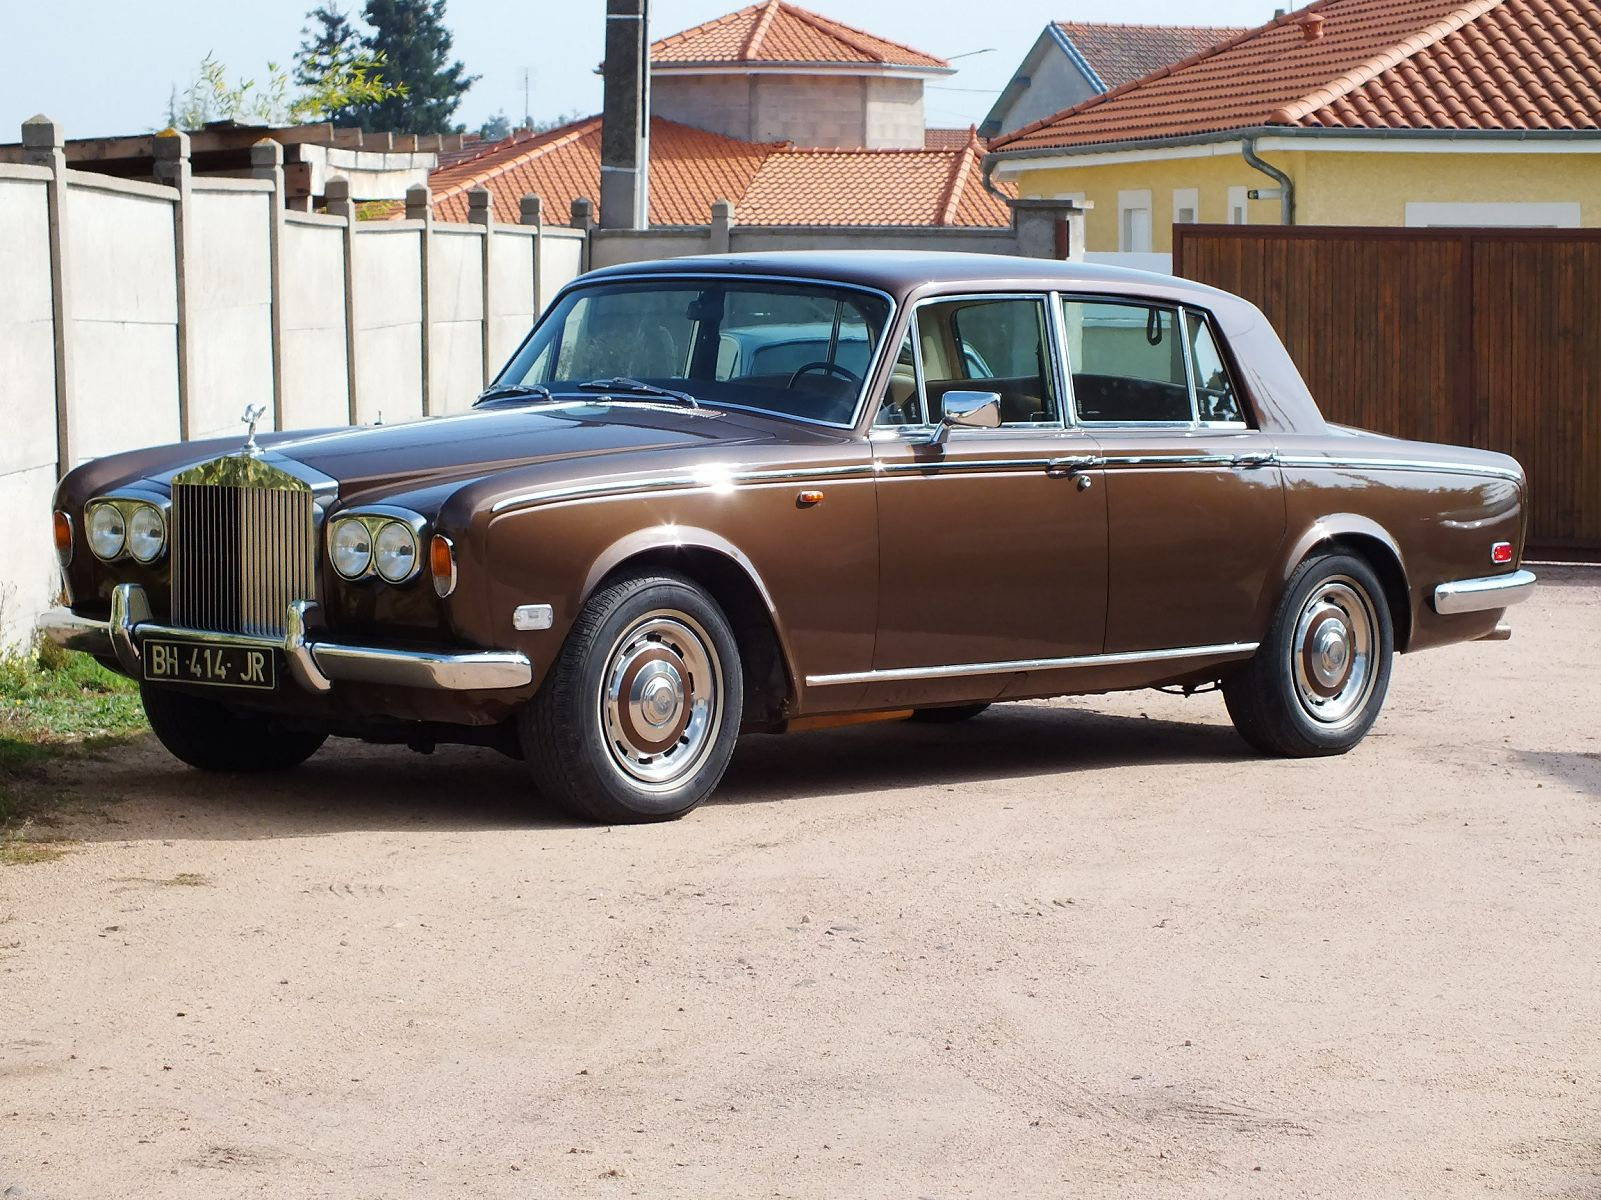 Rolls Royce Silver Shadow I 1976